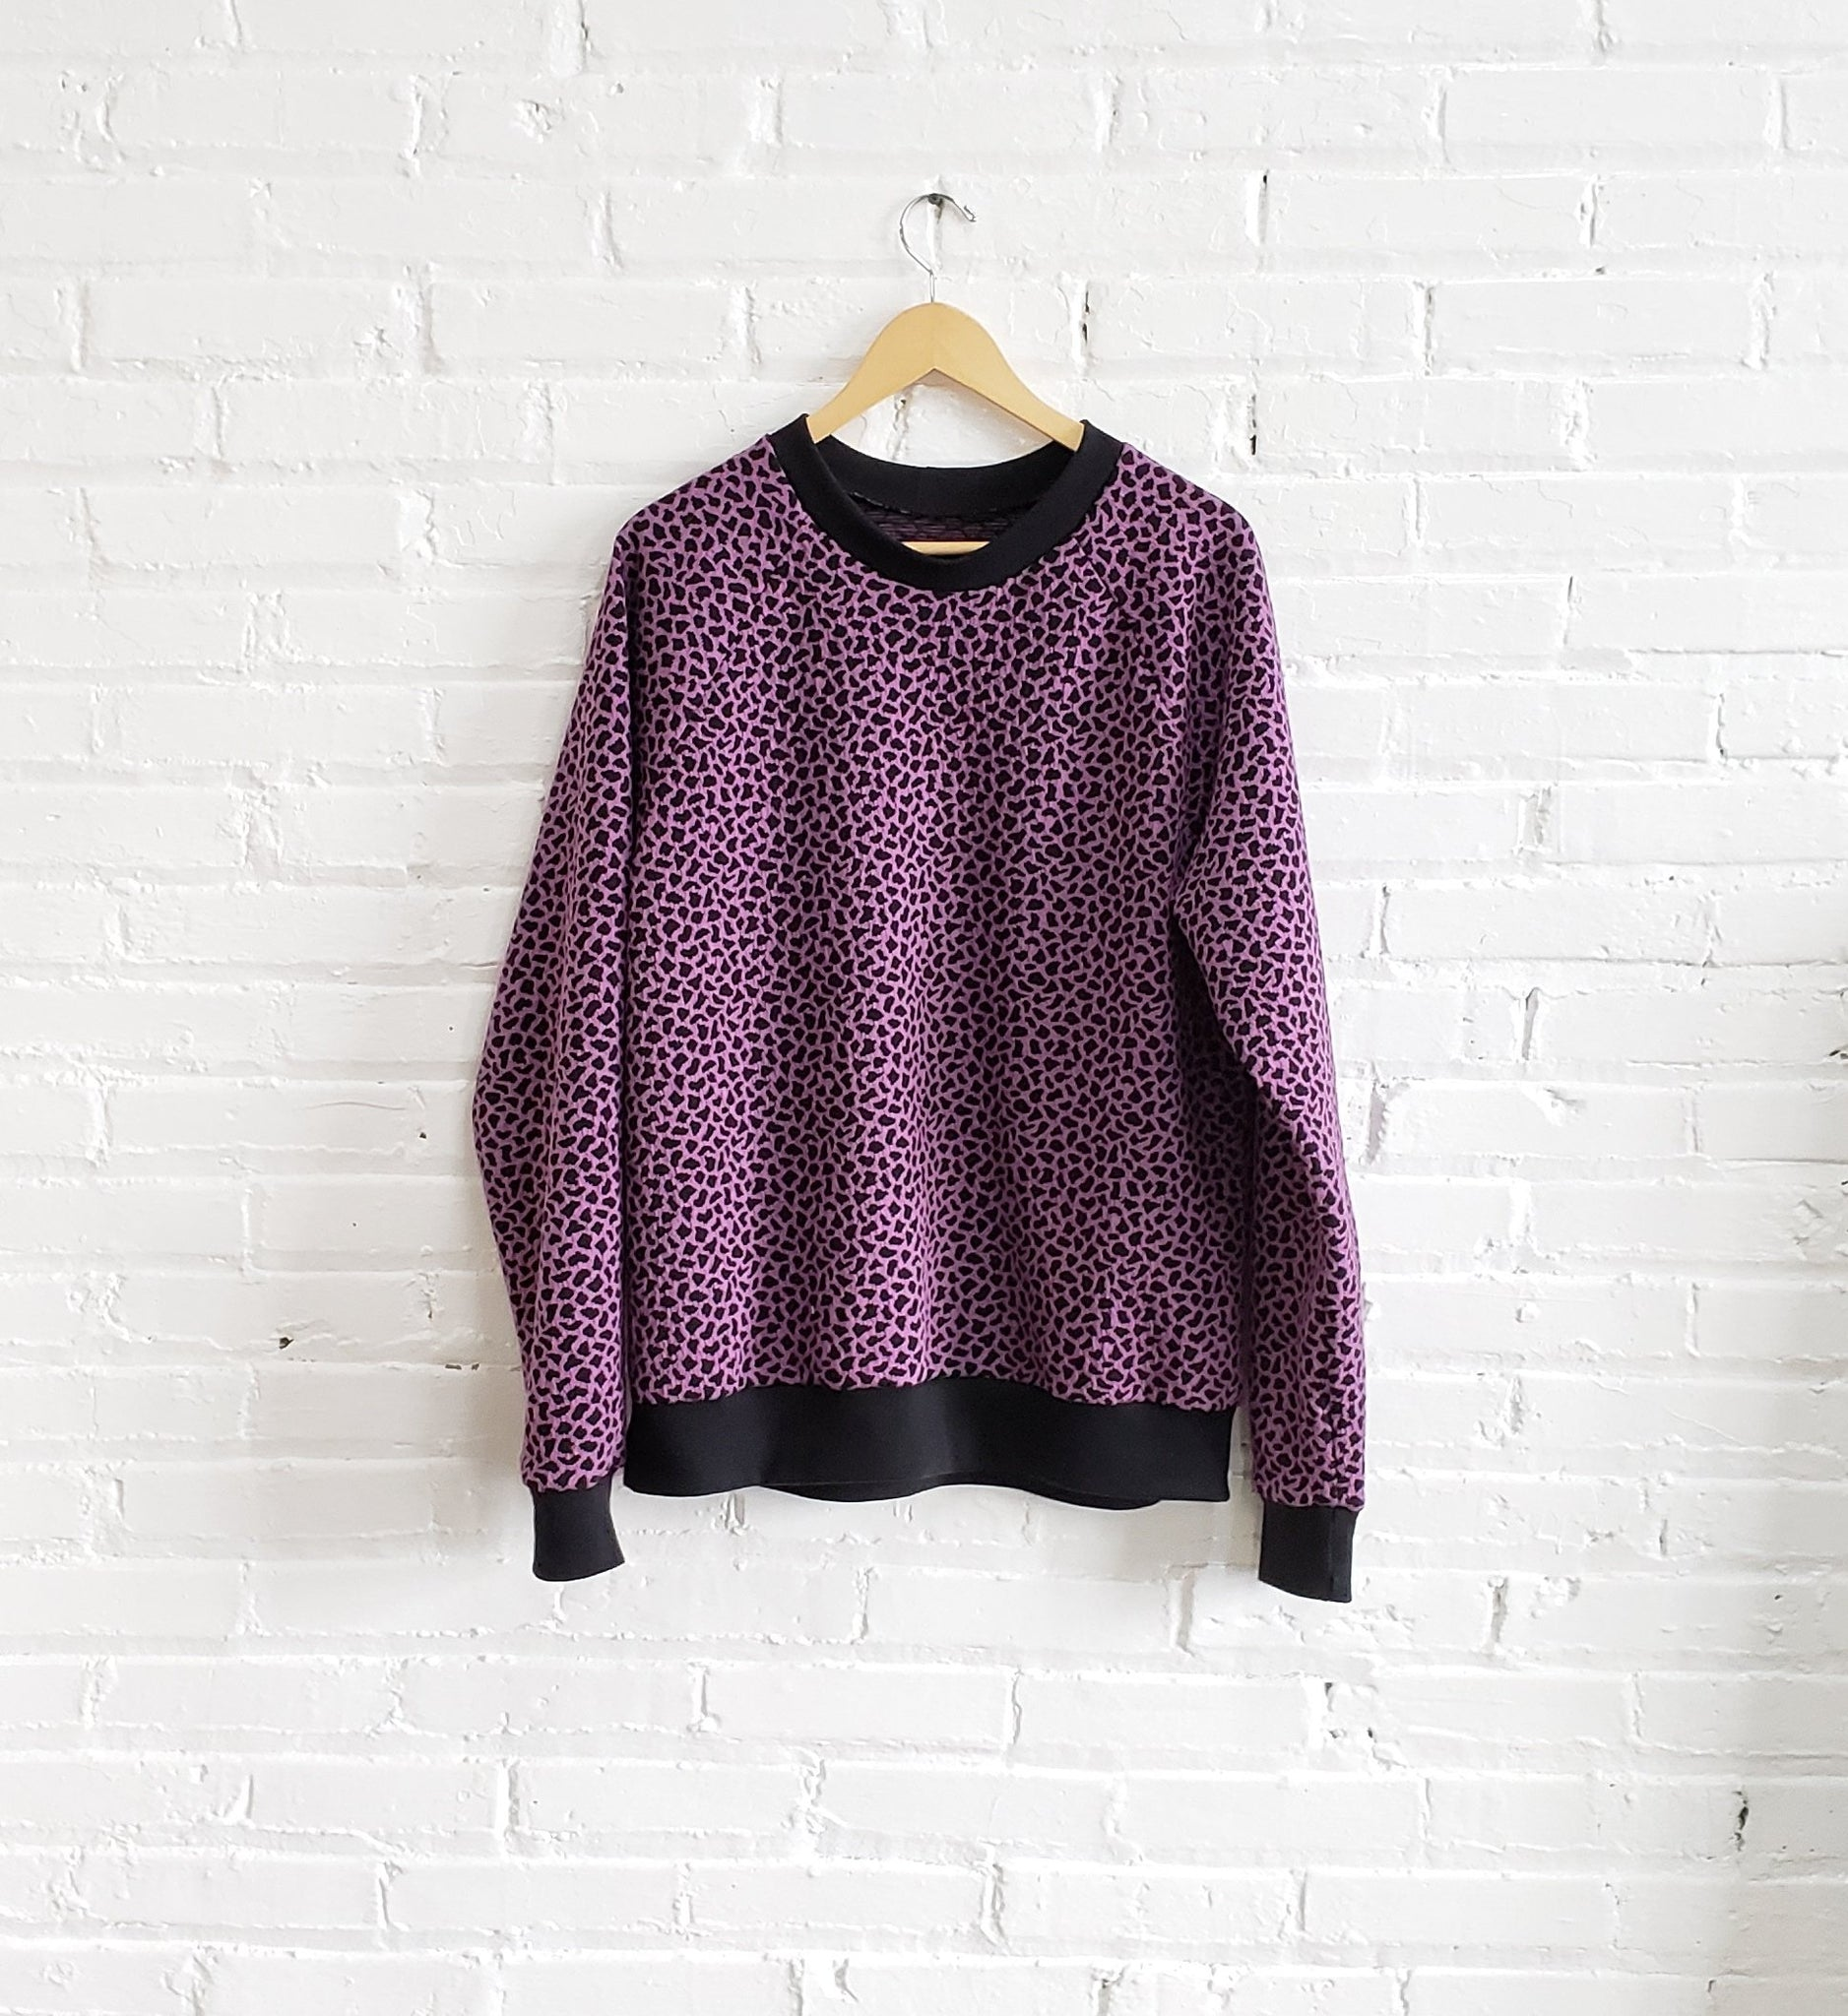 purple black speckled sweatshirt hanging on a white brick wall